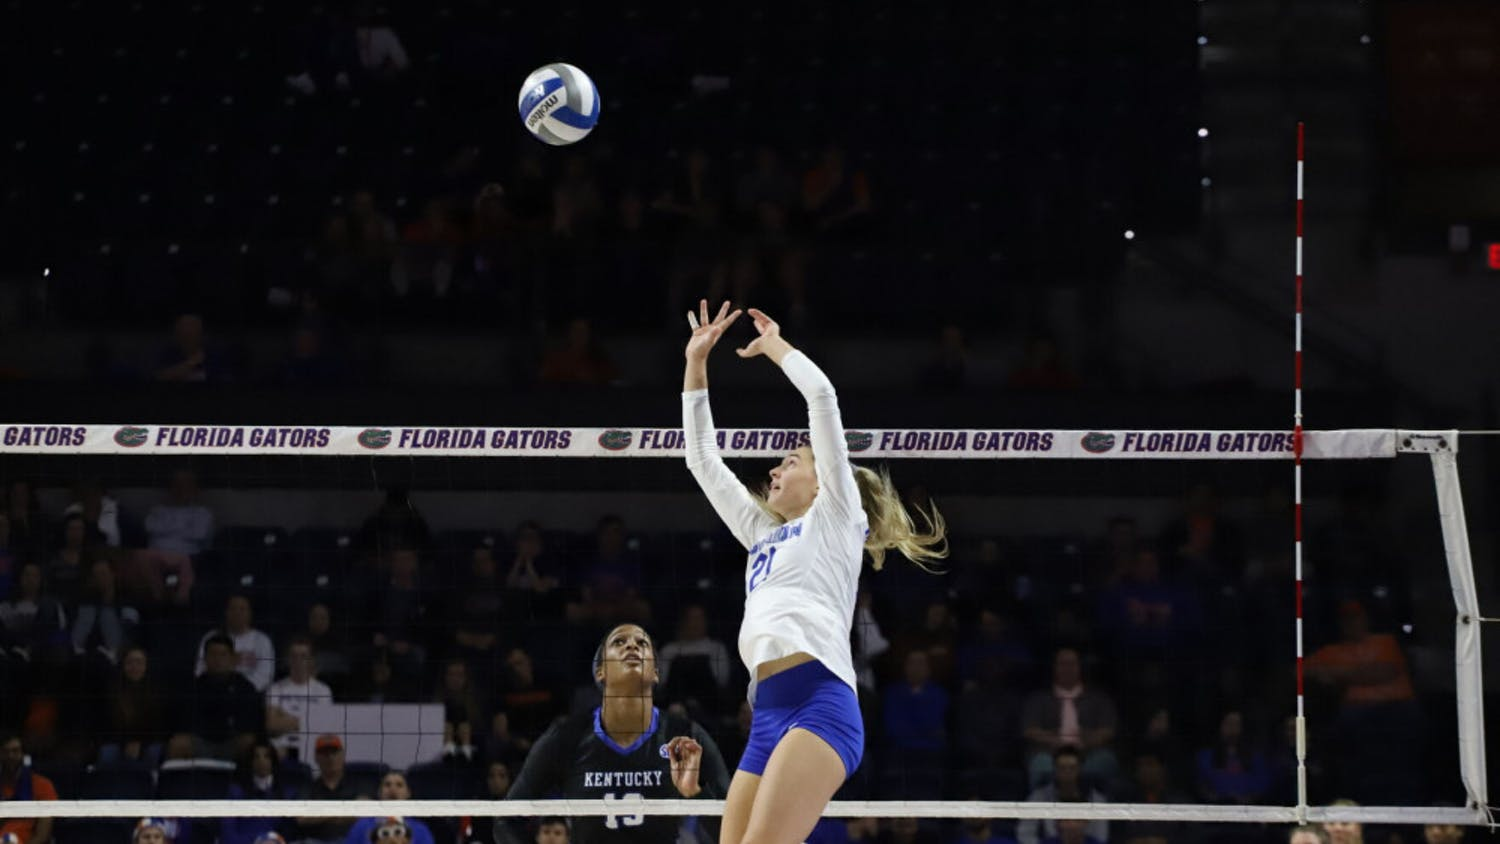 Now-junior Marlie Monserez sets for the Gators at last year's home match versus Kentucky. The setter reached a career-high in kills Friday against Tennessee